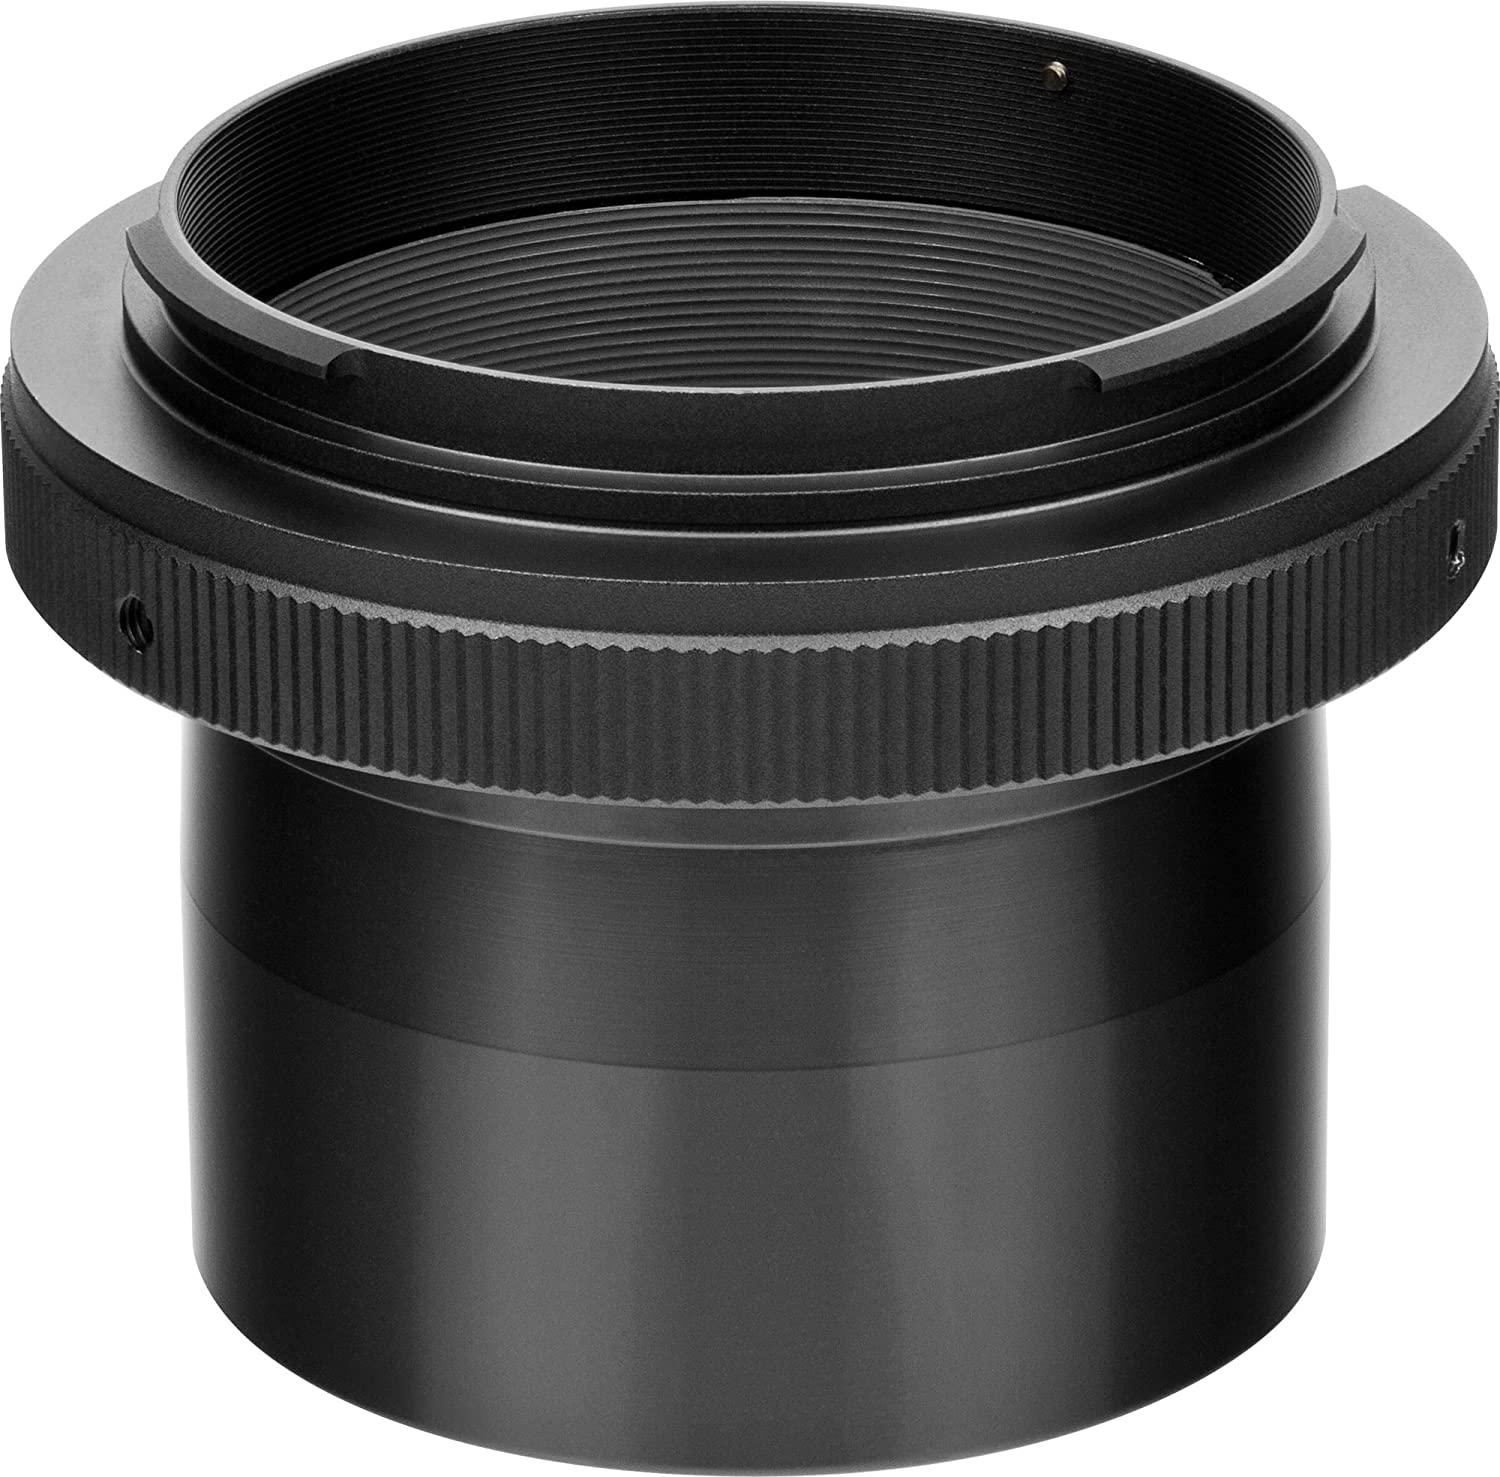 Orion 05640 Superwide 2' Prime Focus Adapter Canon EOS Cameras, Black Optronic Technologies Inc